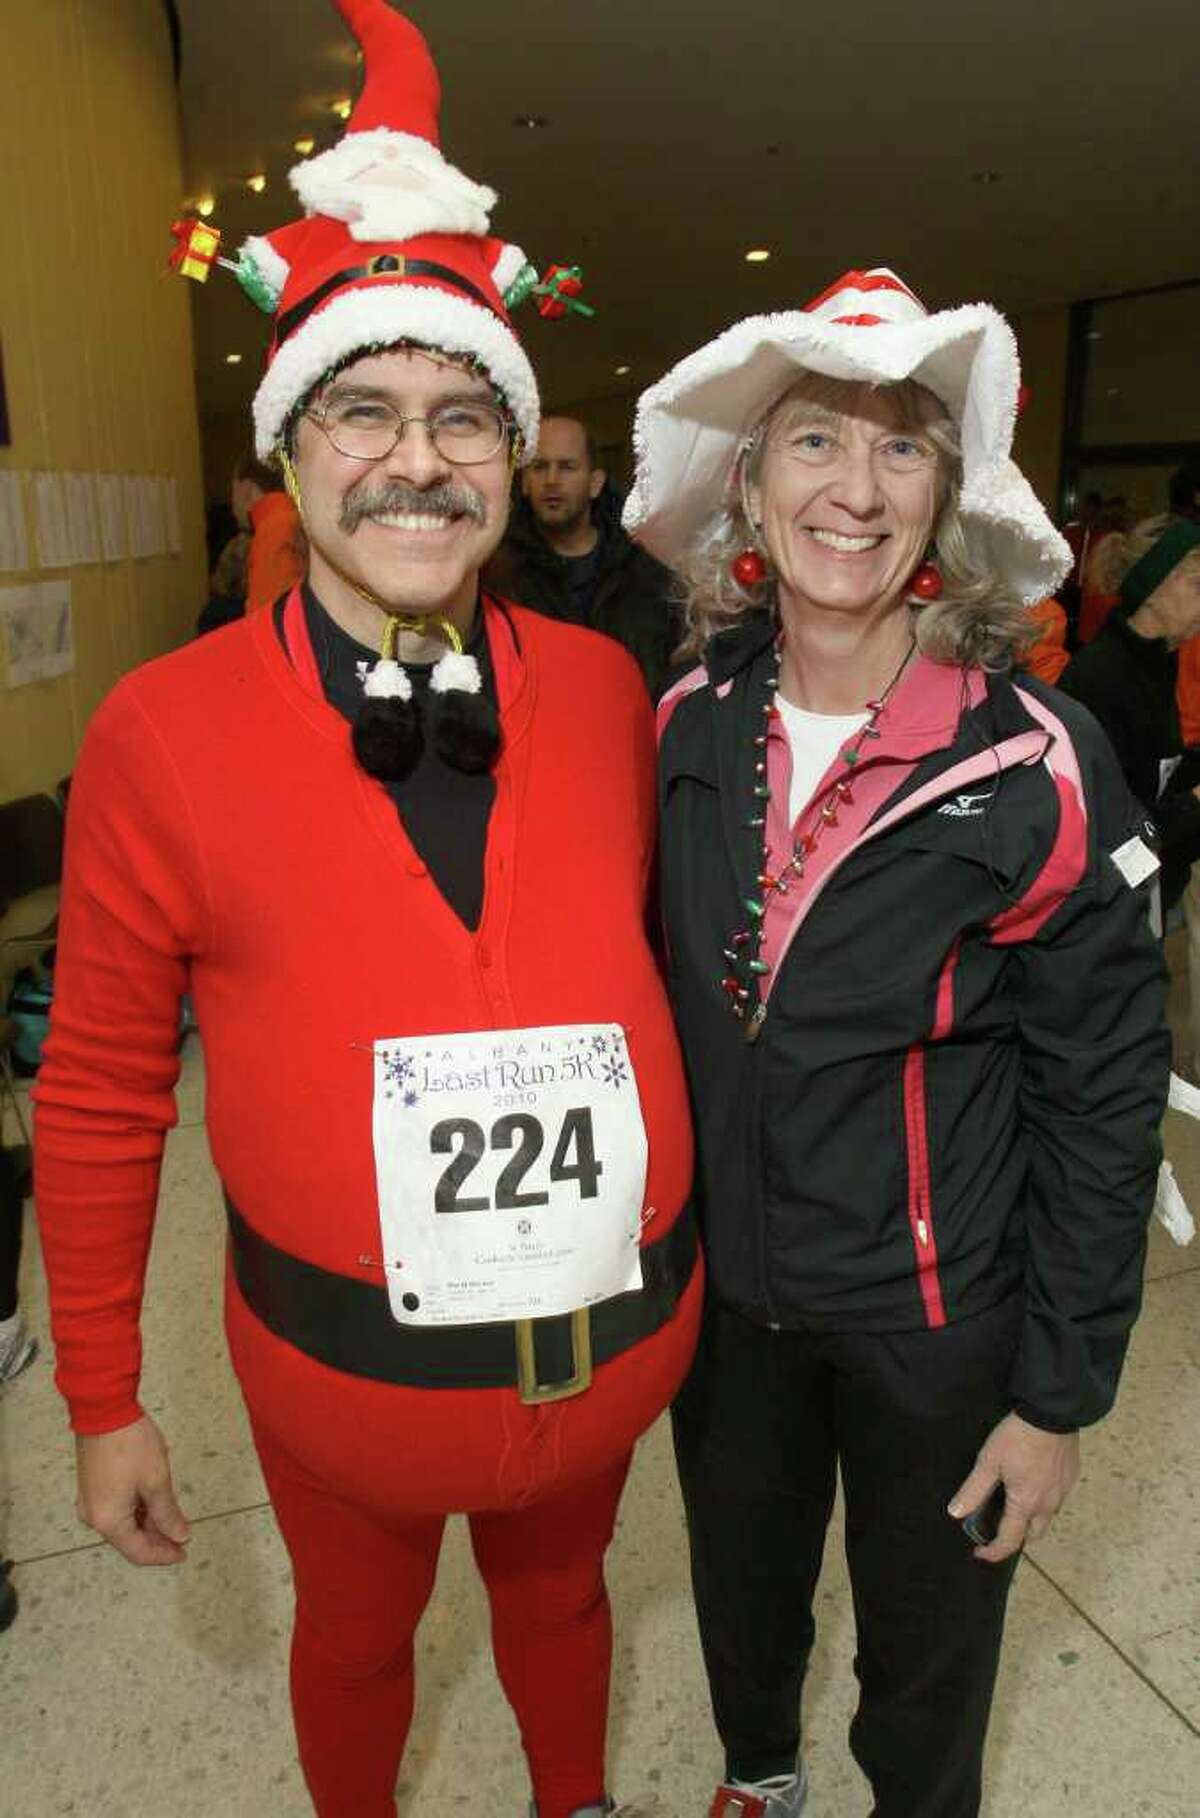 Dave and Jean Drexler get into the holiday spirit with creative running gear. (Joe Putrock / Special to the Times Union)